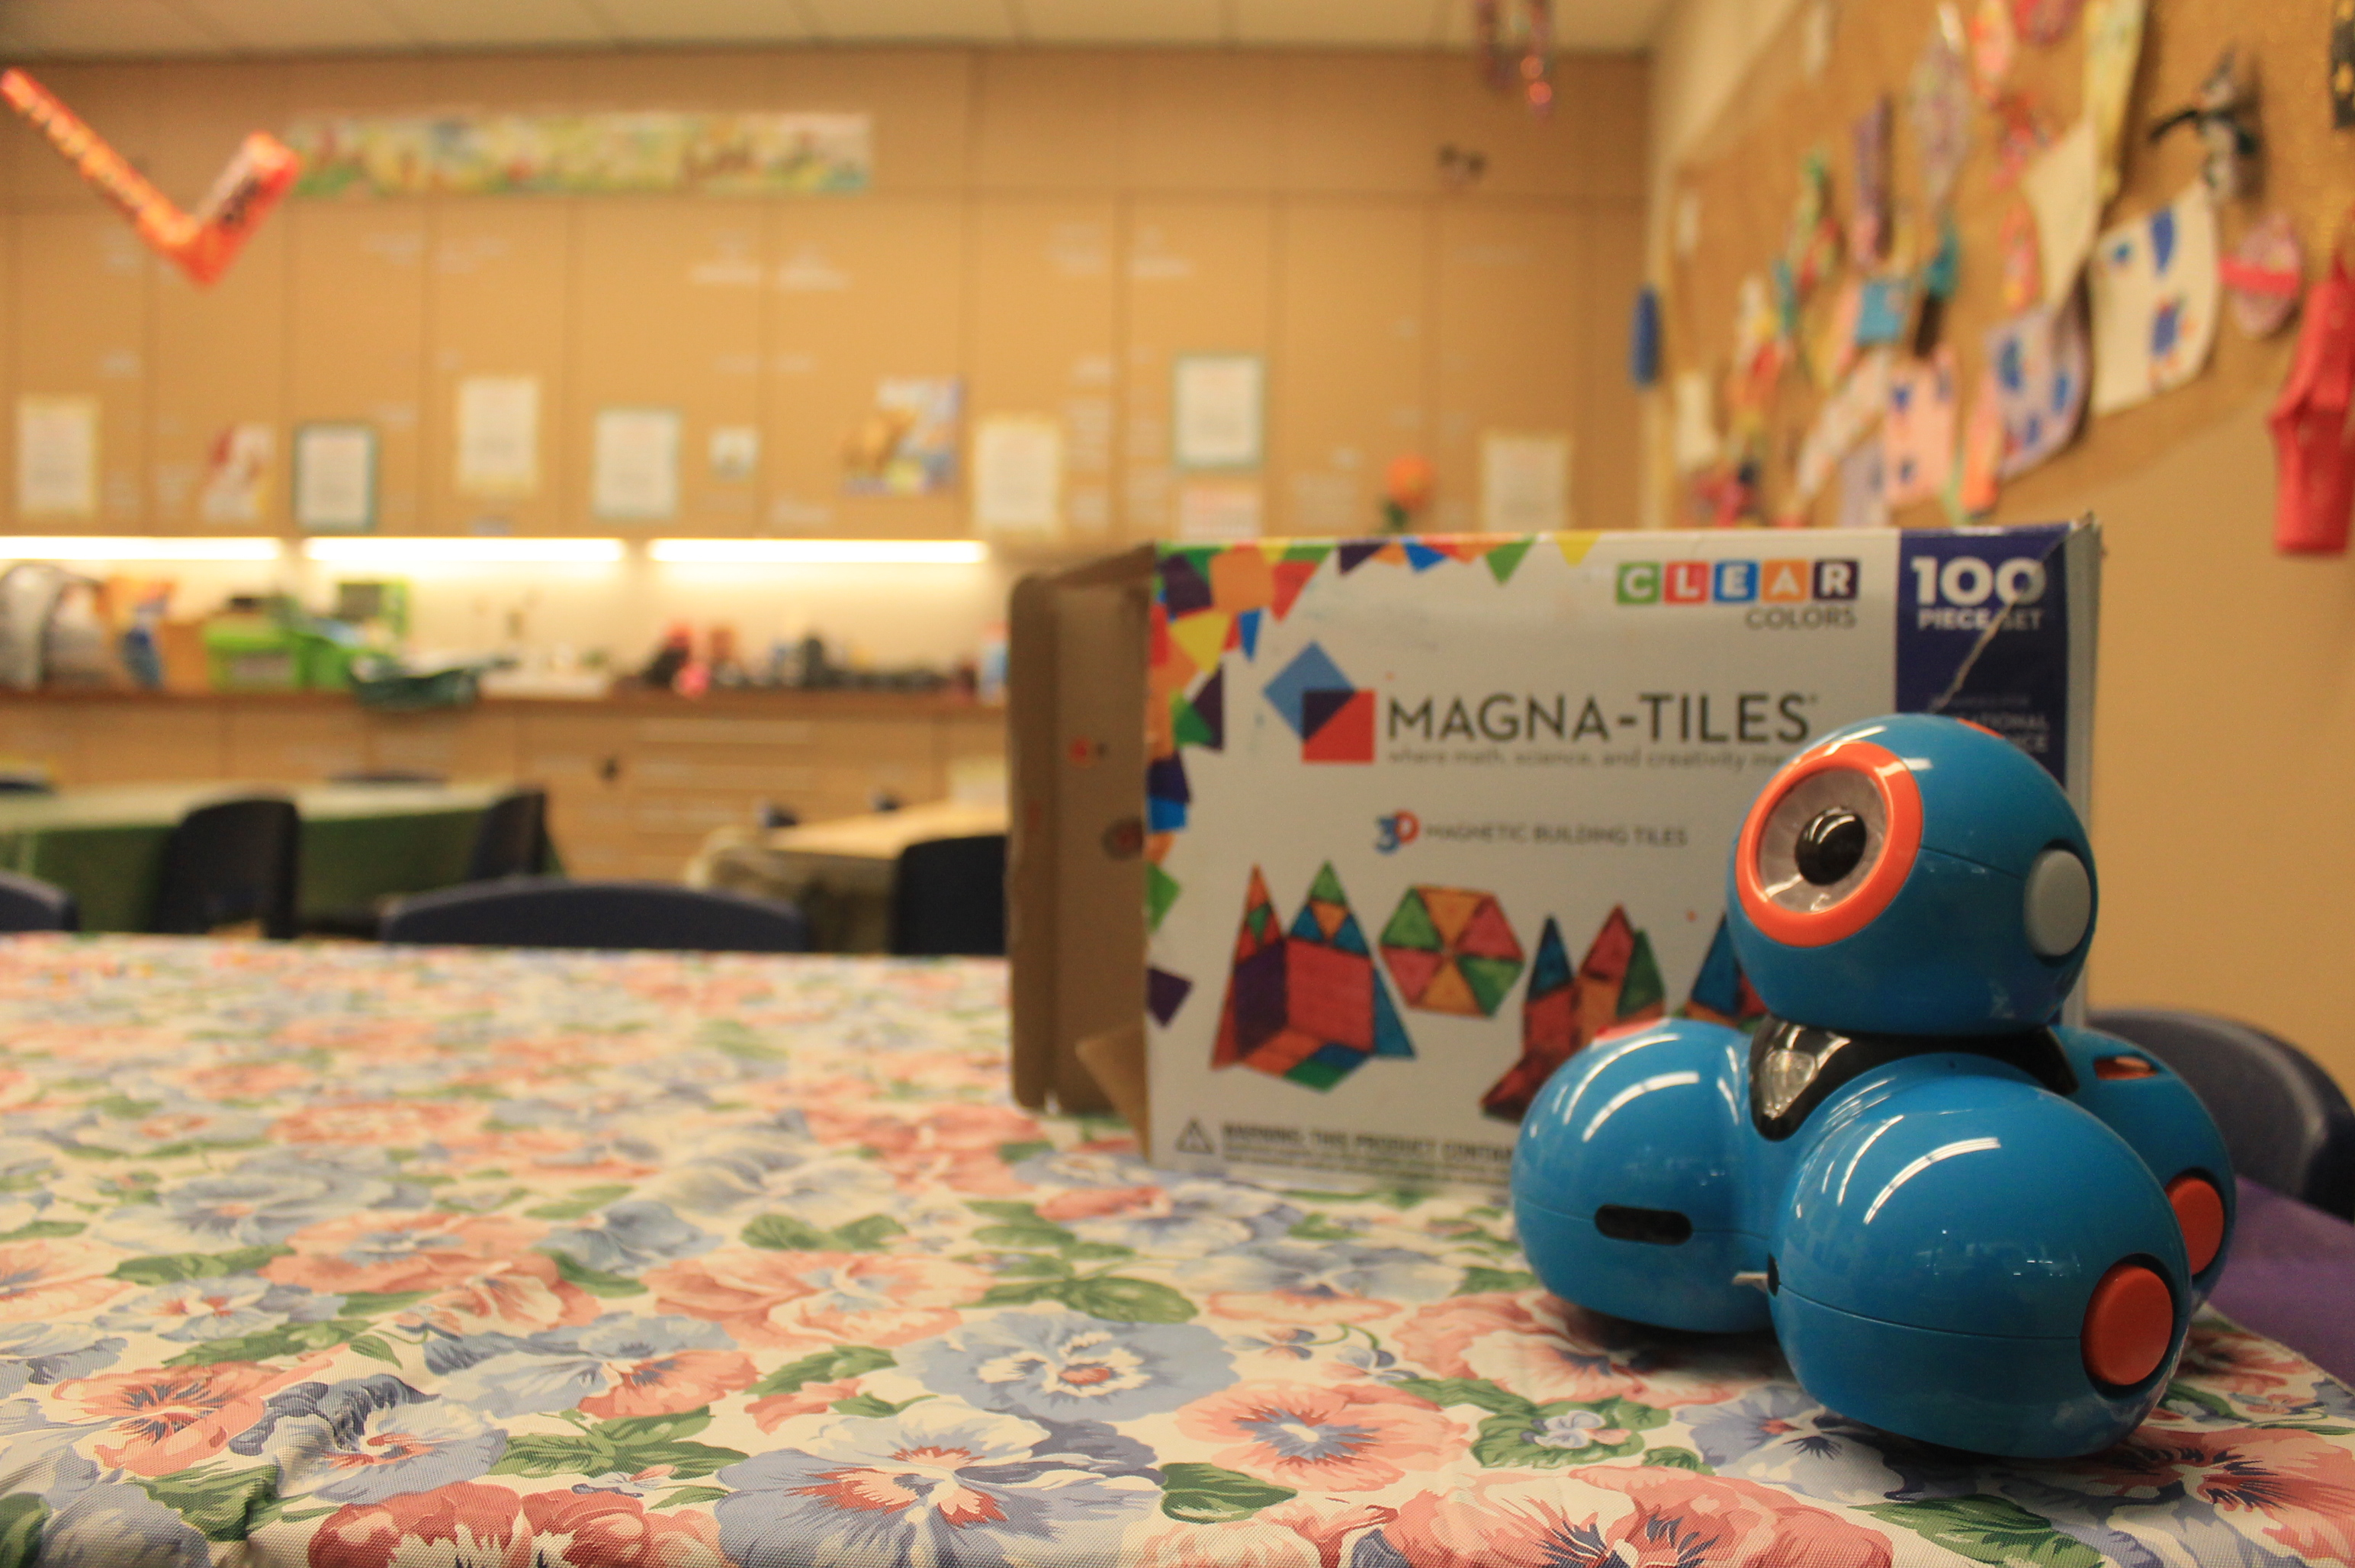 A Dash robot and Magnetiles in the Children's STEAM Center.